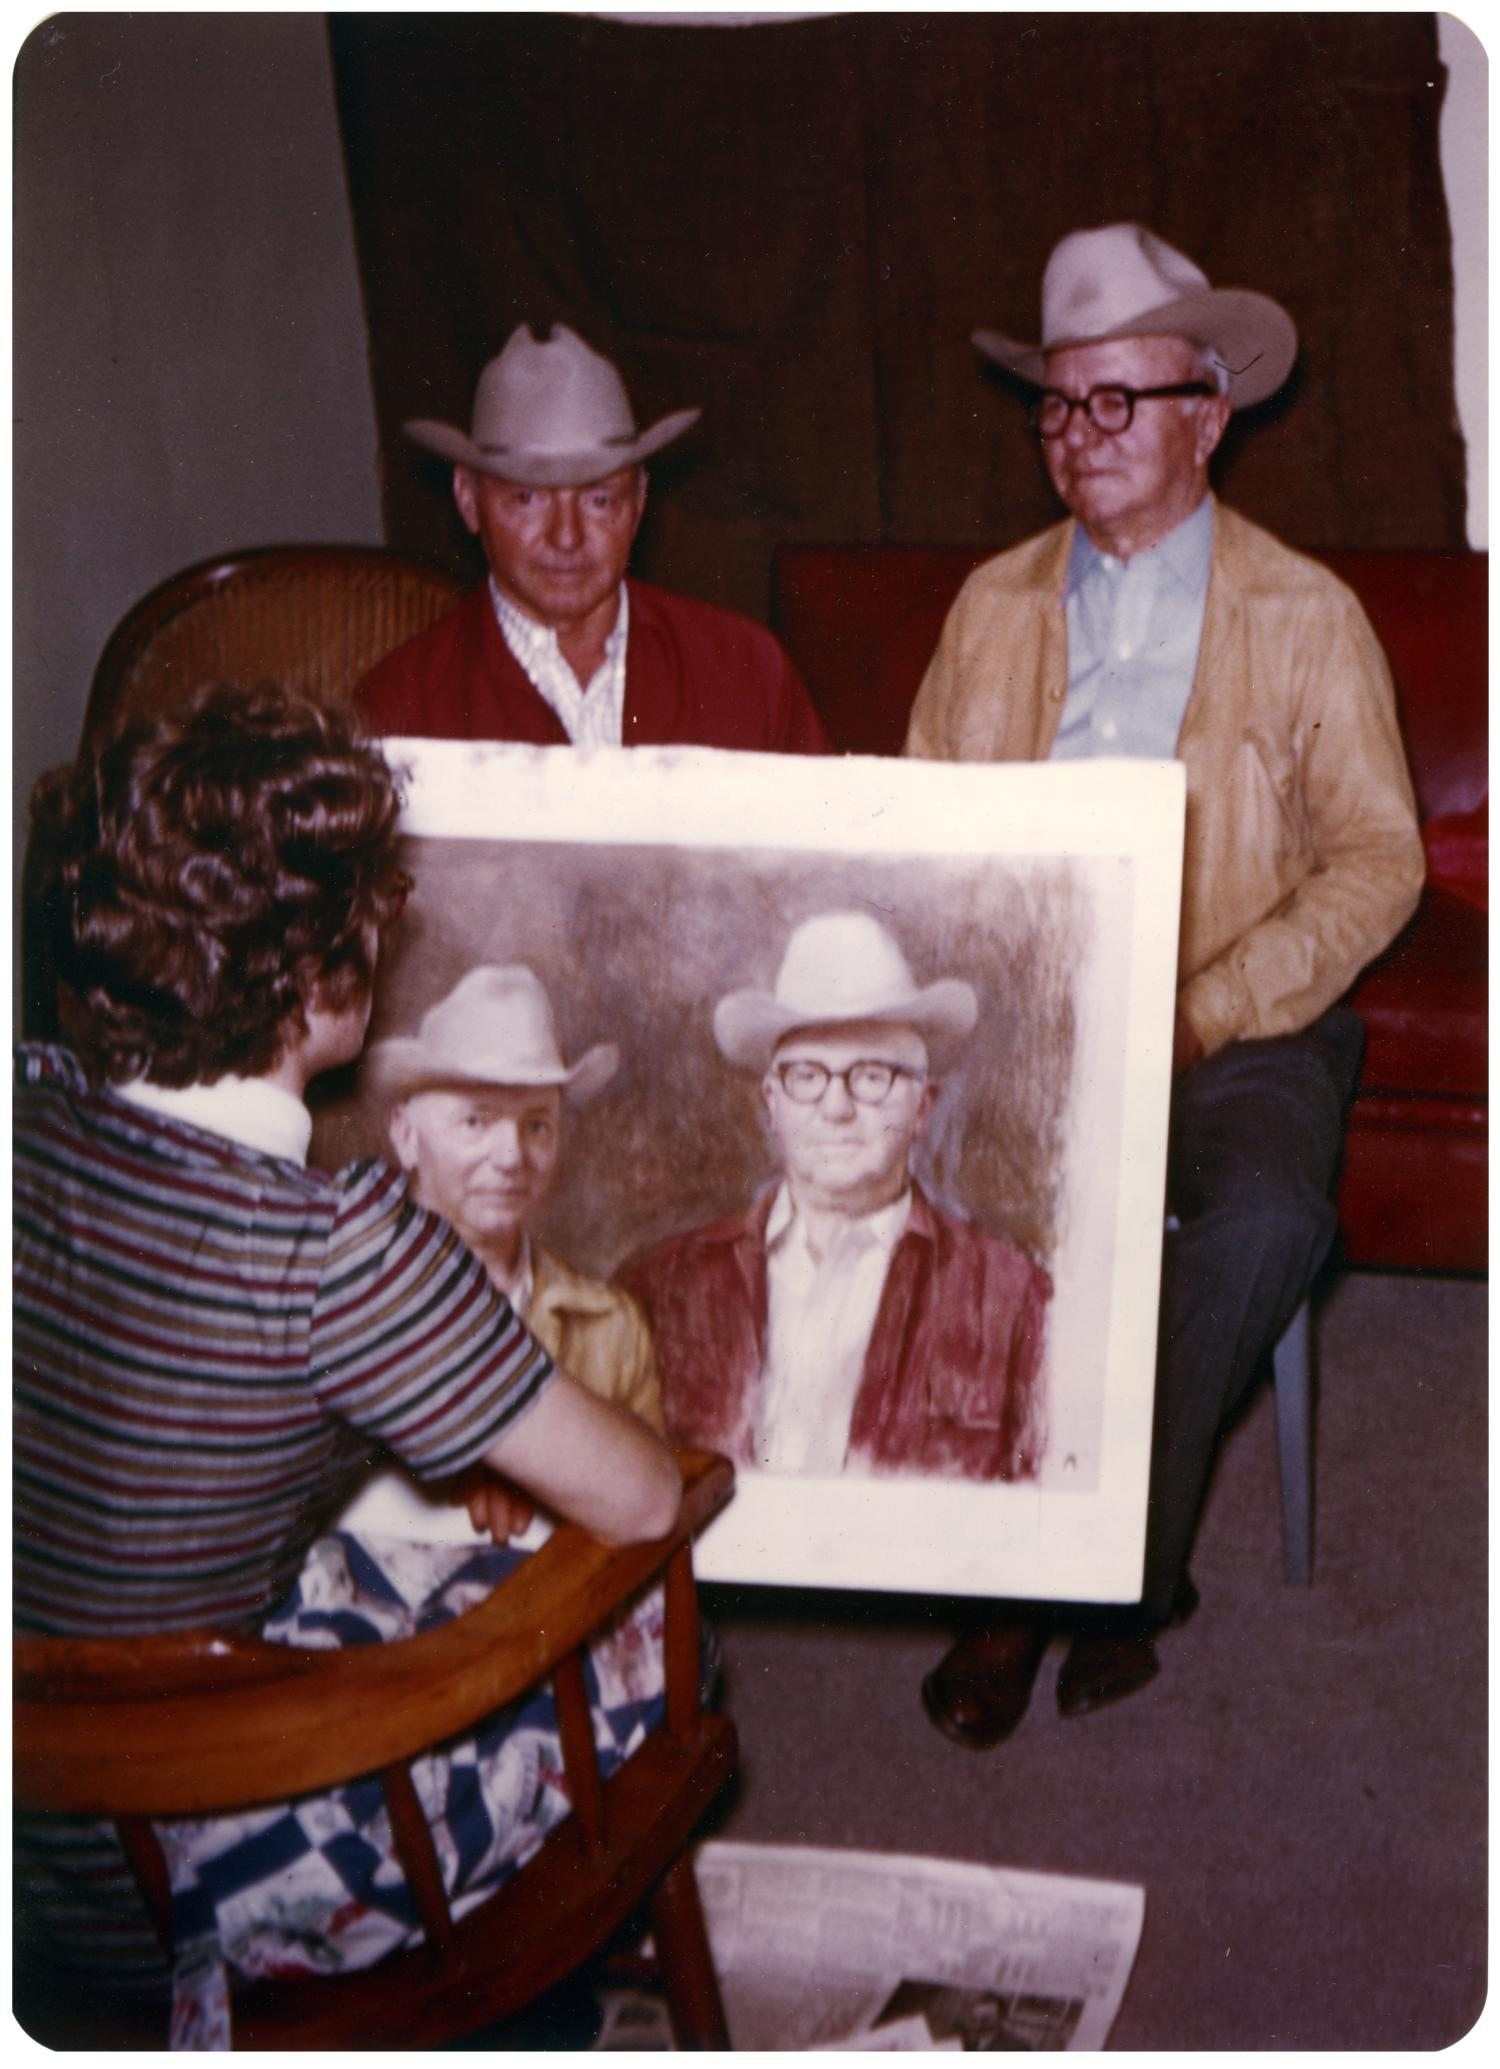 [Allison Joy with a Portrait of the Two Men Sitting in Front of Her]                                                                                                      [Sequence #]: 1 of 2